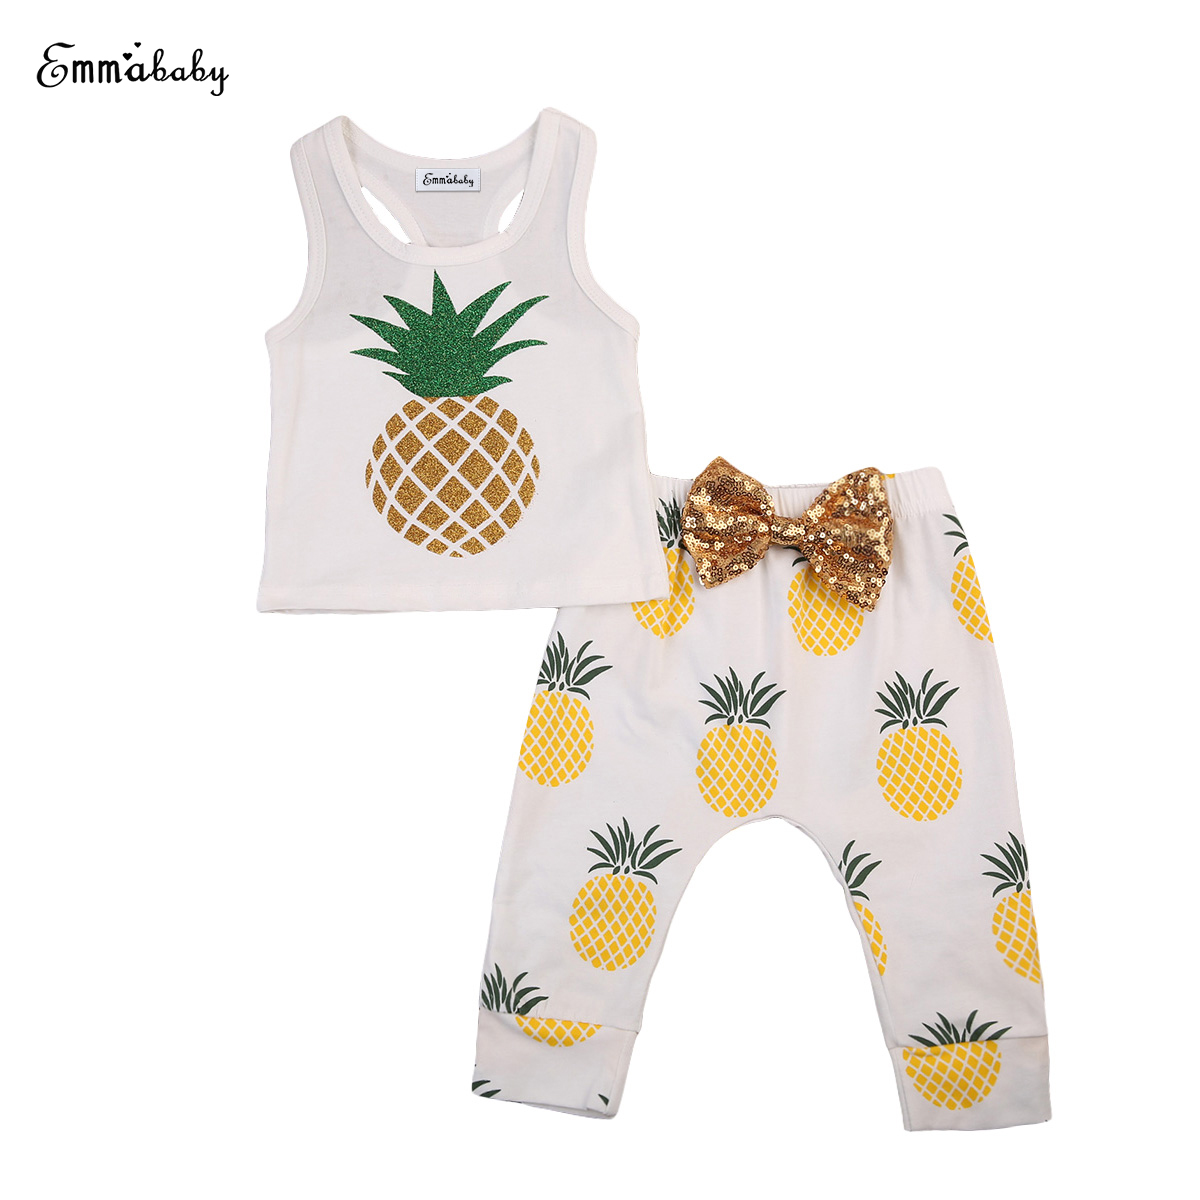 2018 New cute Newborn Infant Baby Boy Girl Kids Cotton sleeveless pineapple print T-shirt+bowknot Pants Sunsuit Clothes Outfit